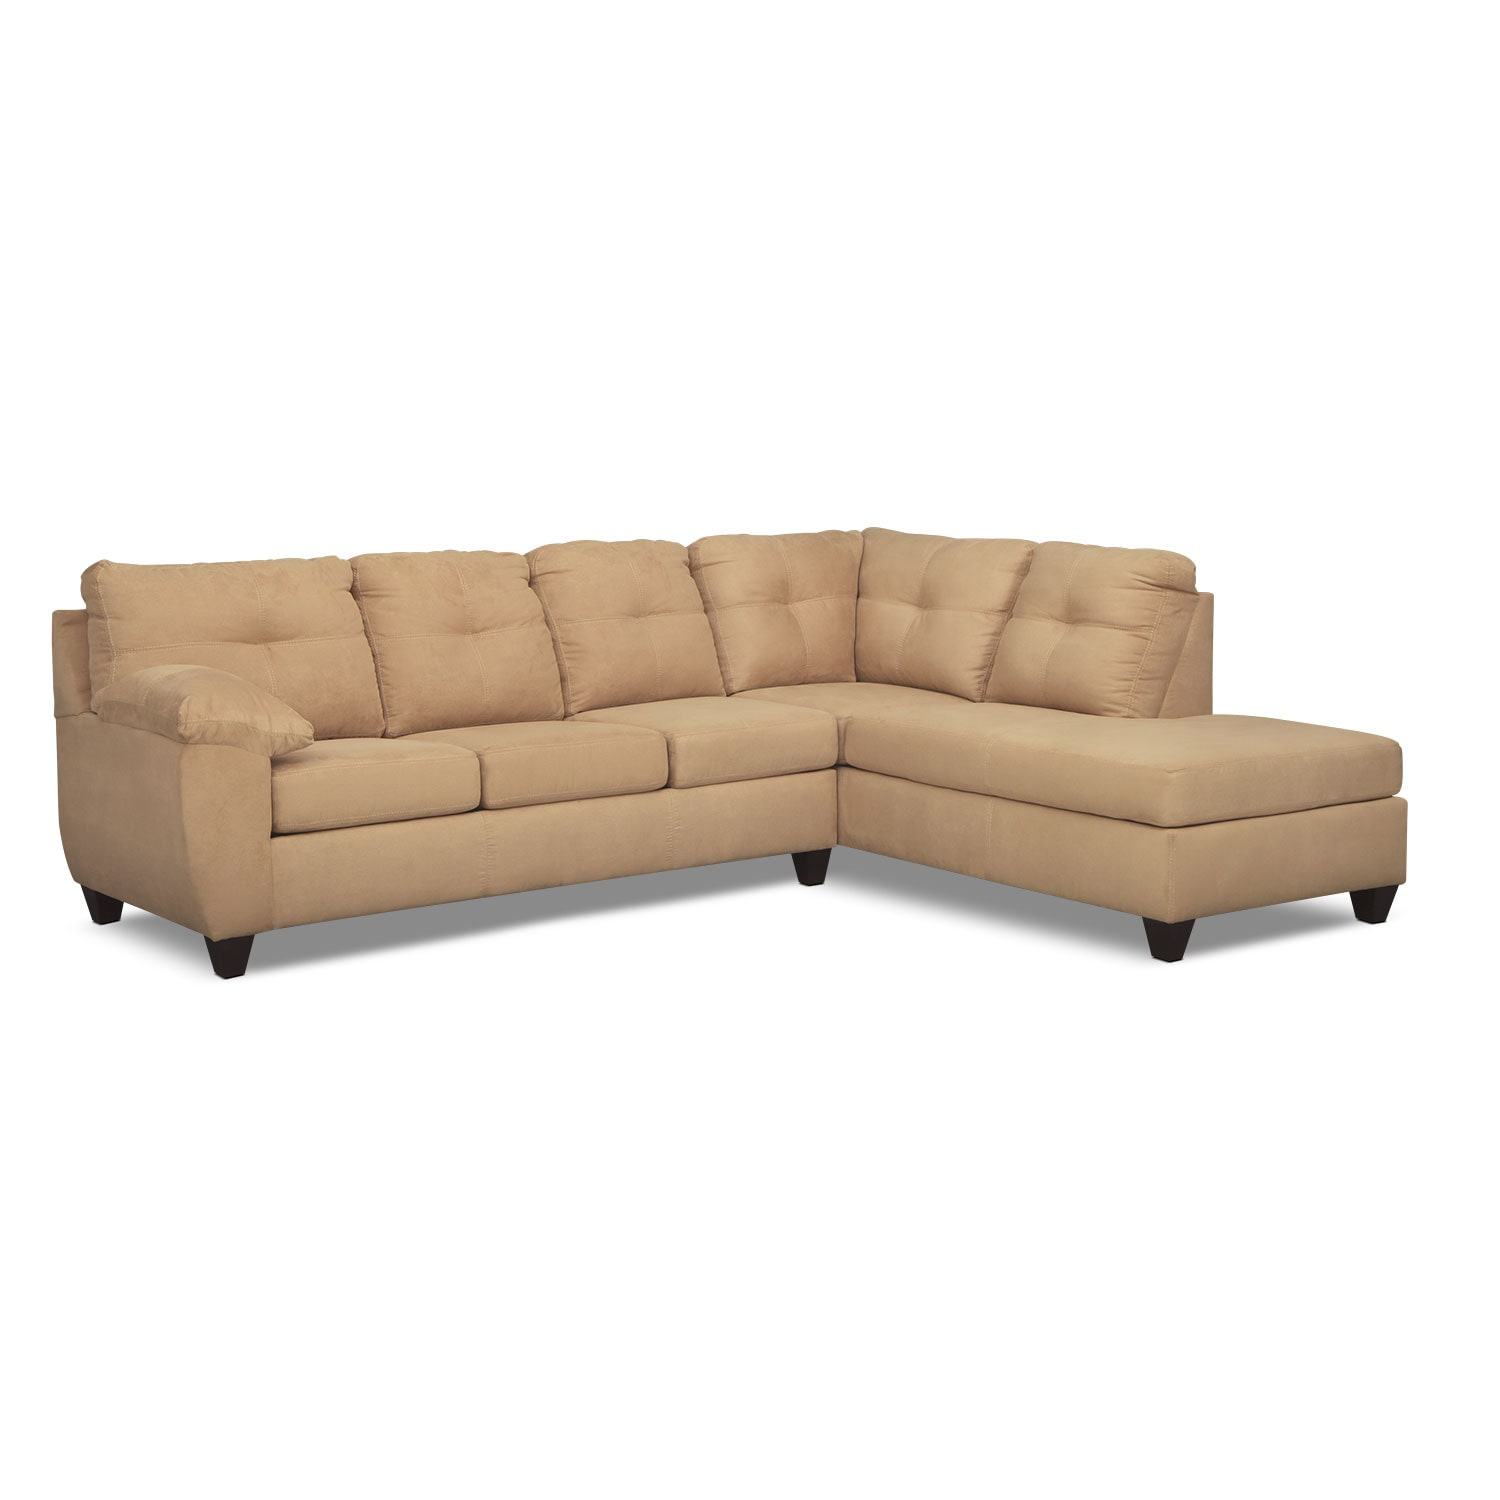 Ricardo 2-Piece Memory Foam Sleeper Sectional with Right-Facing Chaise - Camel  sc 1 st  Value City Furniture : value city leather sectionals - Sectionals, Sofas & Couches